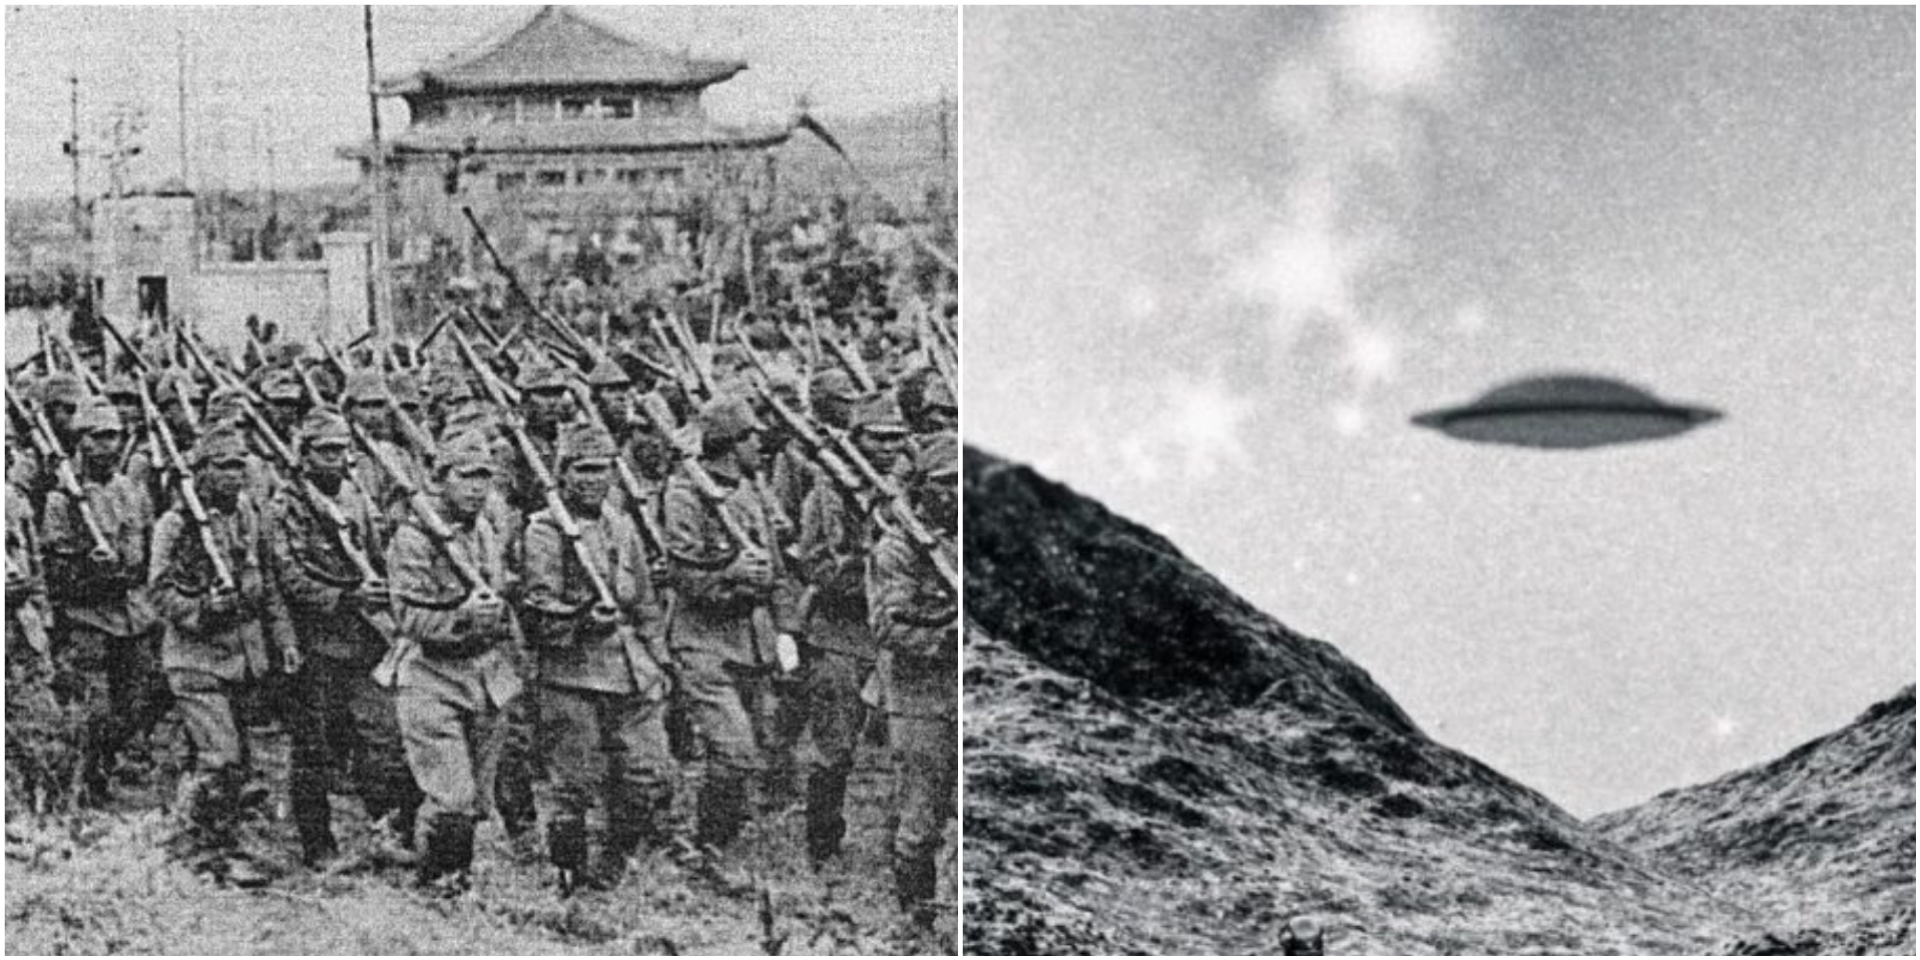 The Bizarre Disappearance of 3,000 Nanking Soldiers In 1939